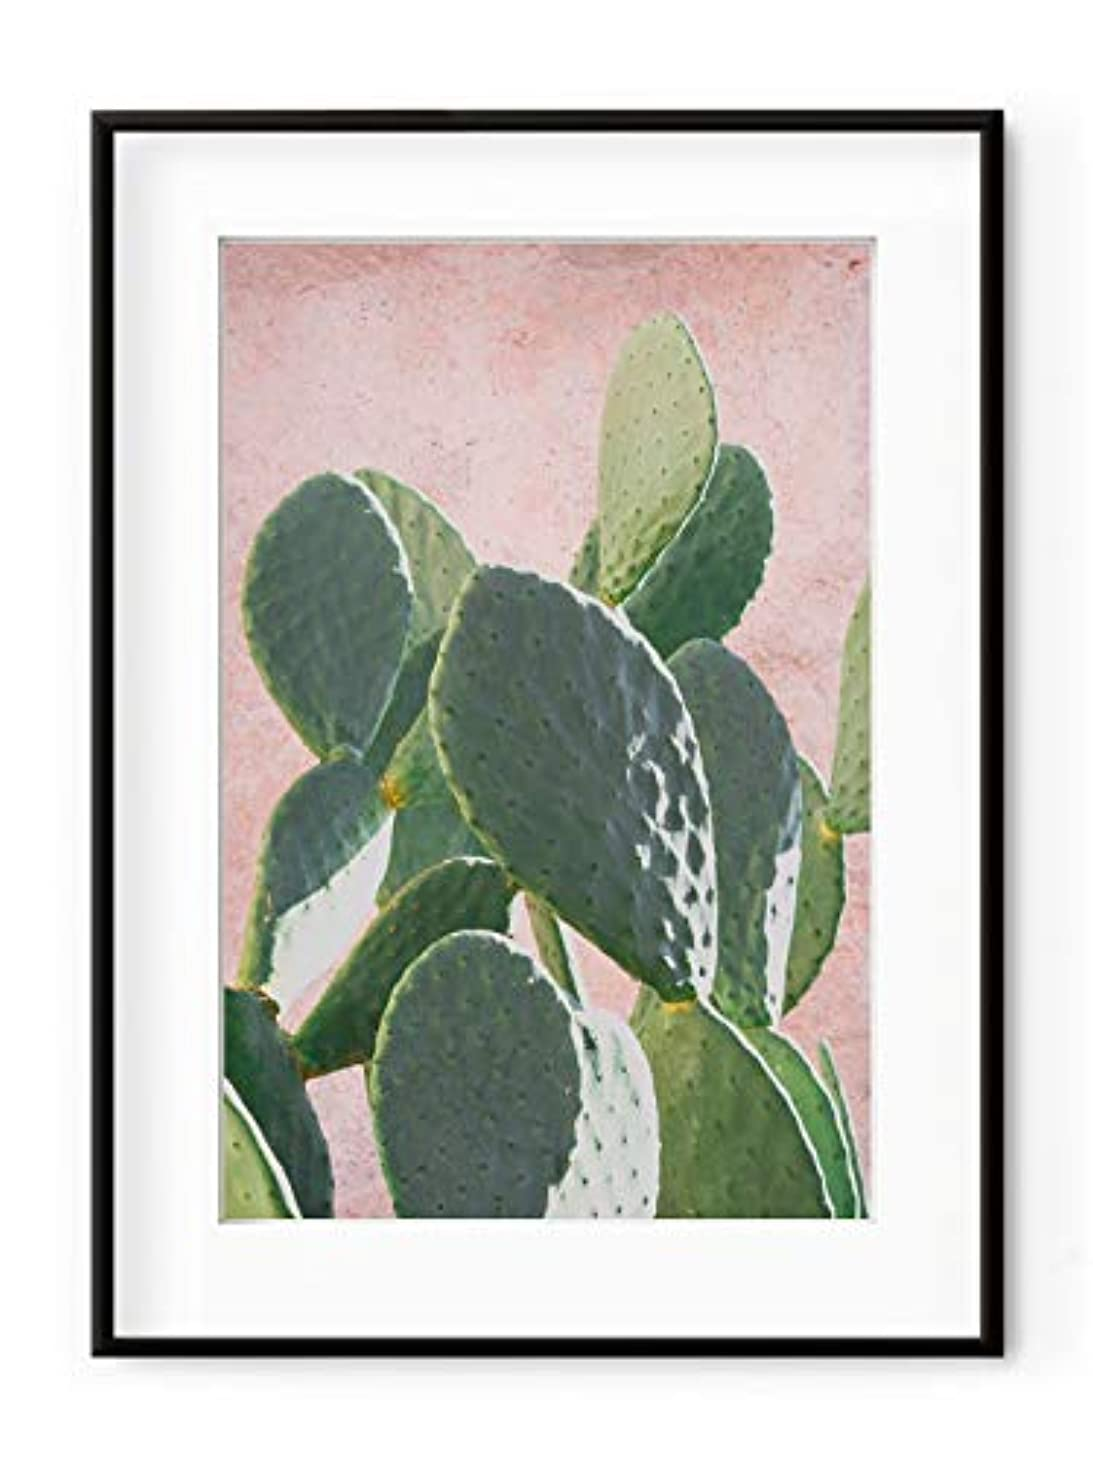 Plant on Pink Barbarian Figurine, White Painted Wood Frame with Mount, Multicolored, 50x70